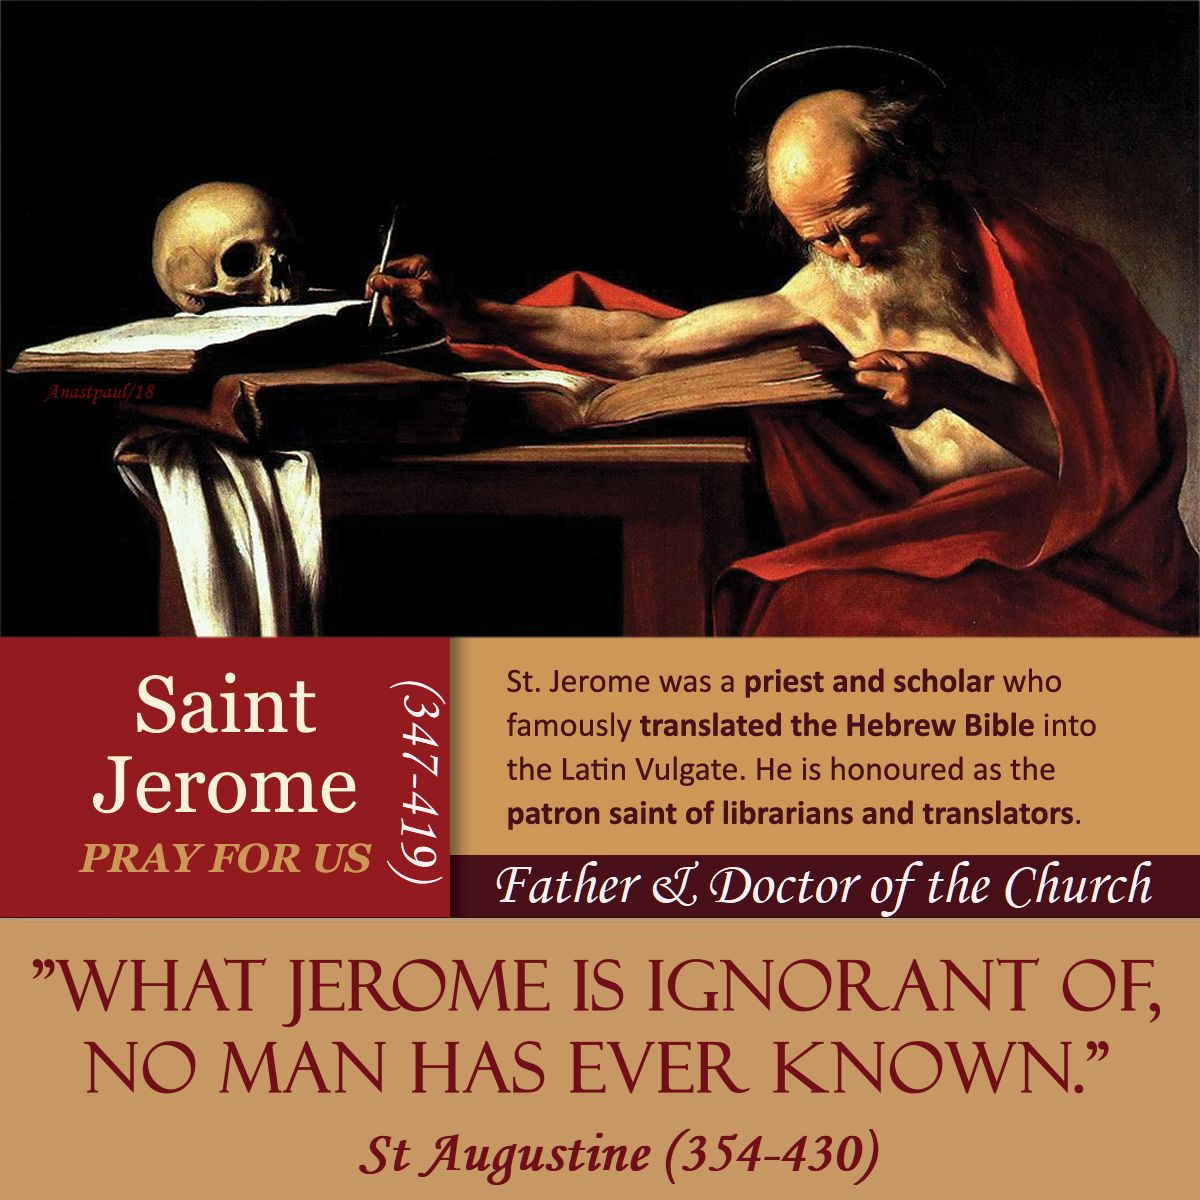 st jerome info - MY EDIT- 30 sept 2018